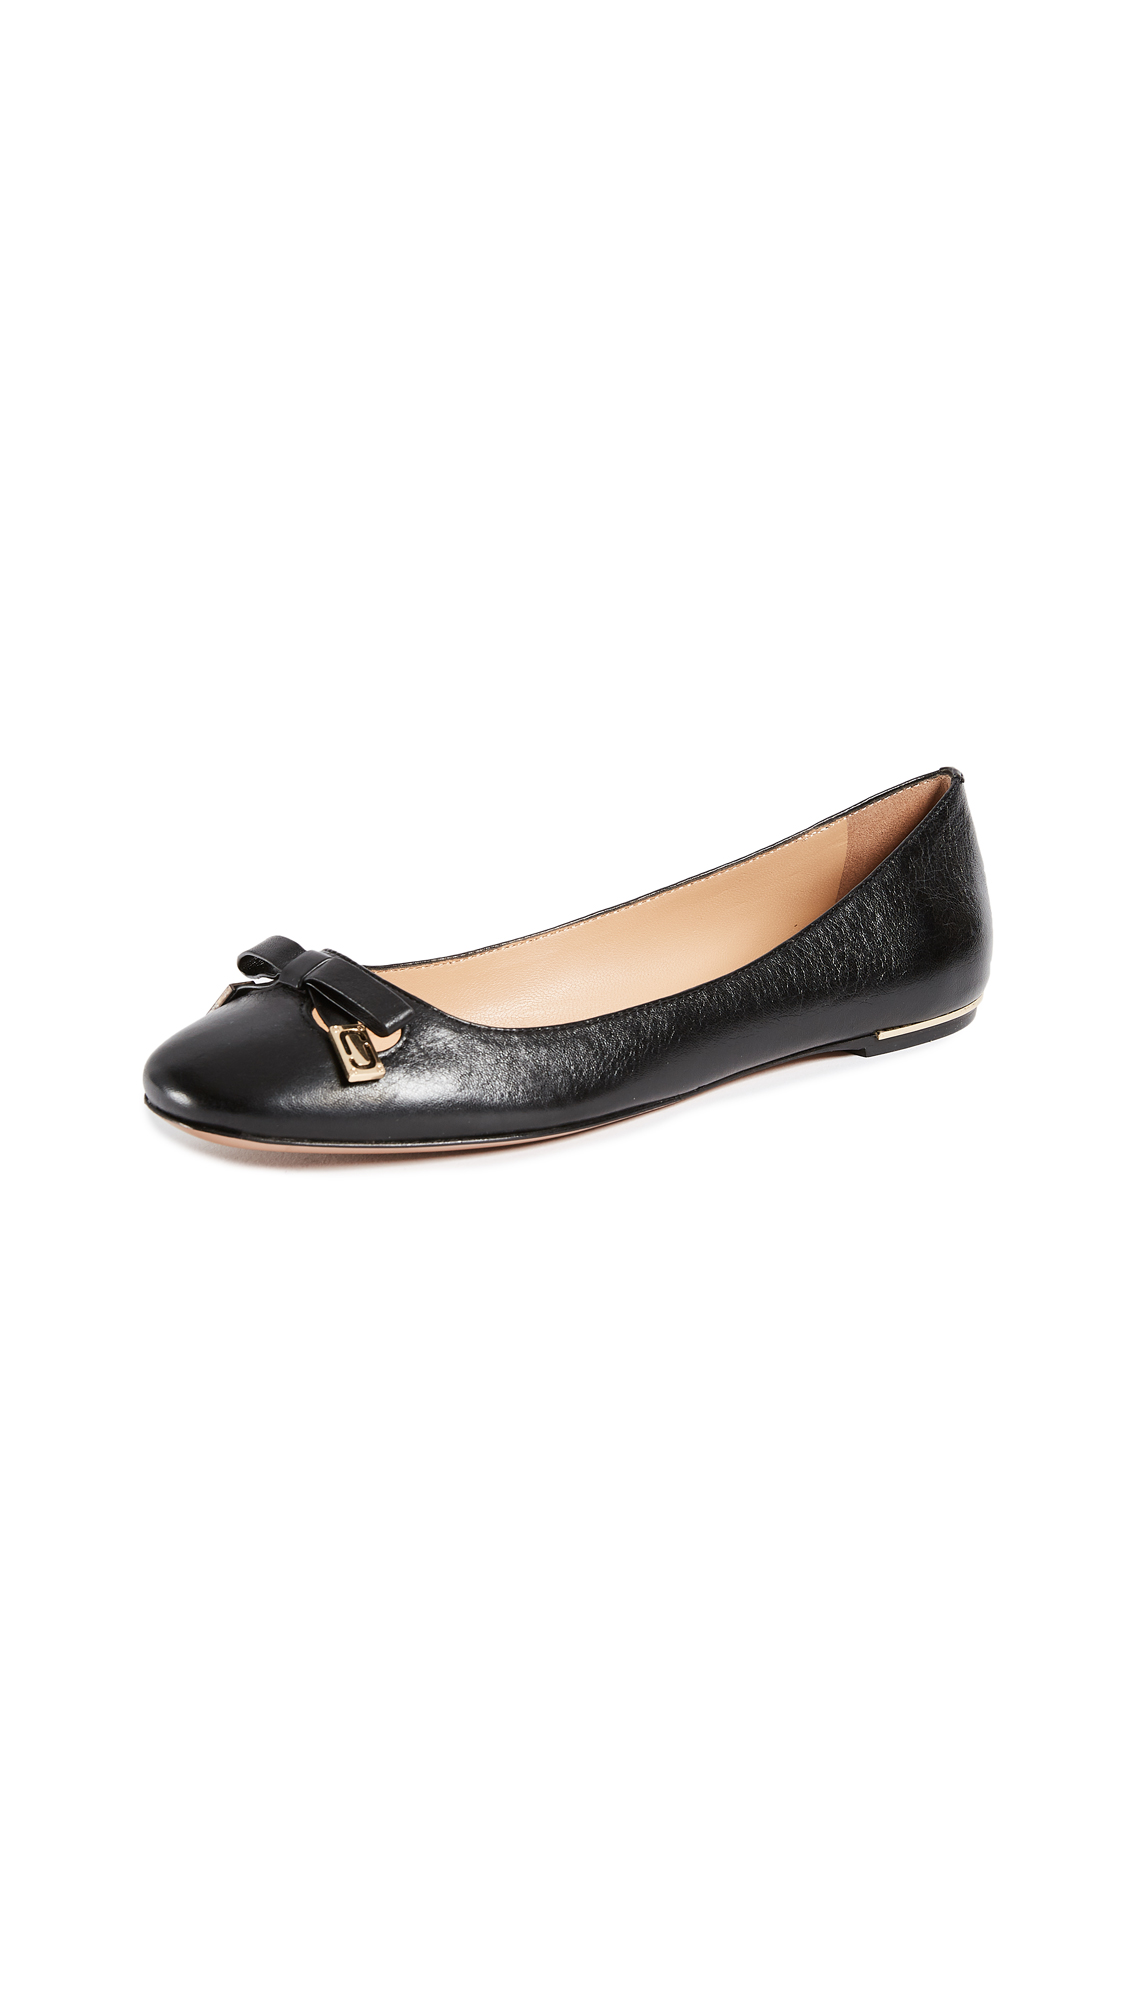 Marc Jacobs Sophie Round Toe Status Ballerina Flats - Black